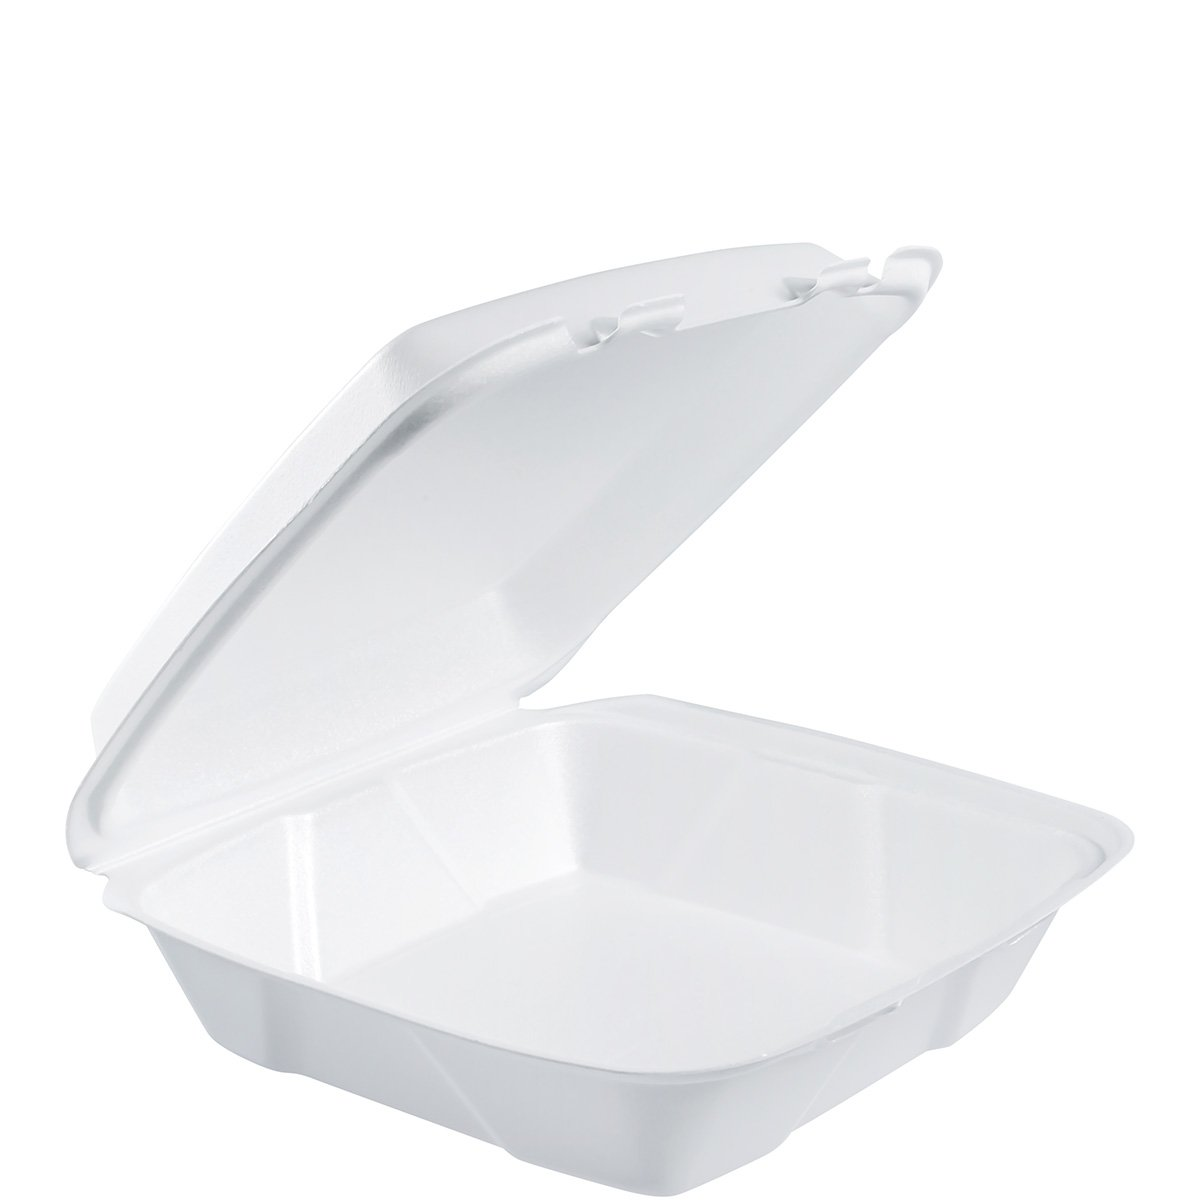 DART - DRC90HT1R Dart 90HT1R Lg Foam Hinged Container, 9 in (Case of 200),White